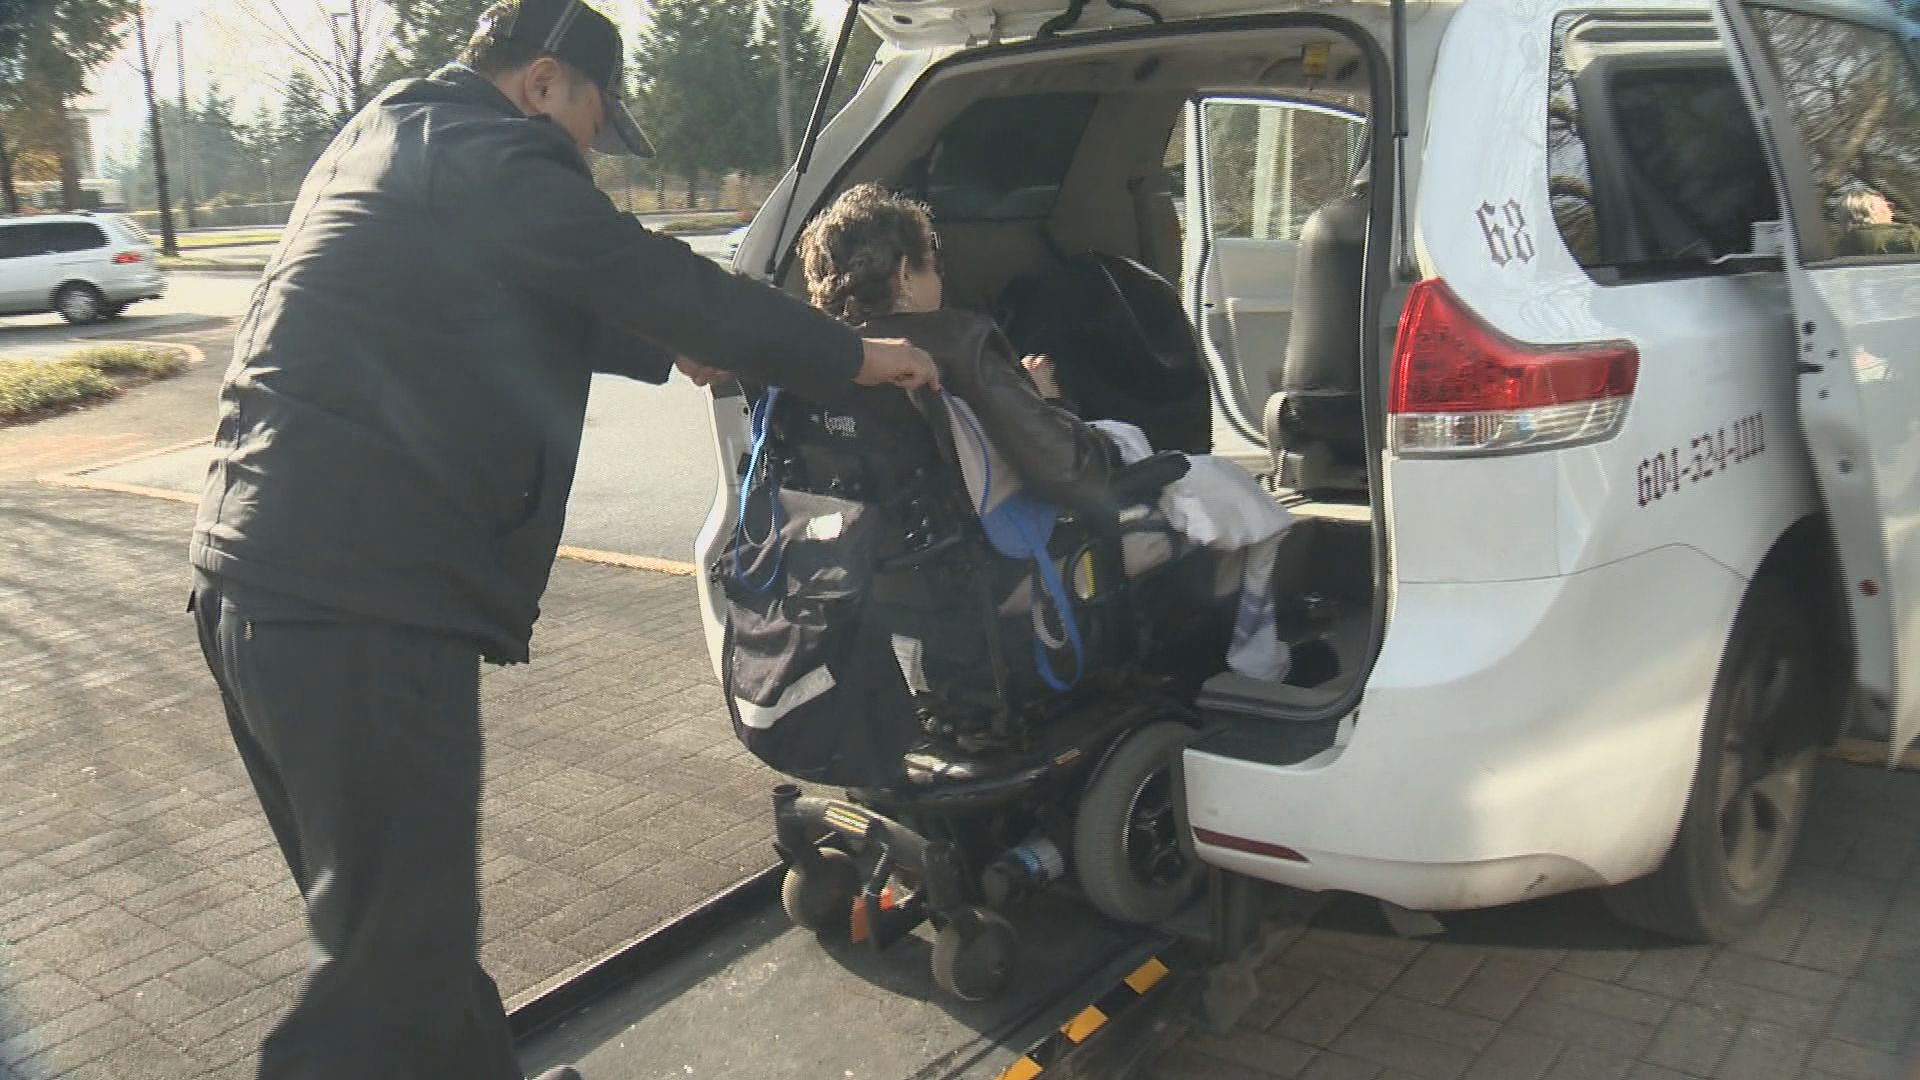 Taxis threaten to scrap accessible vehicles